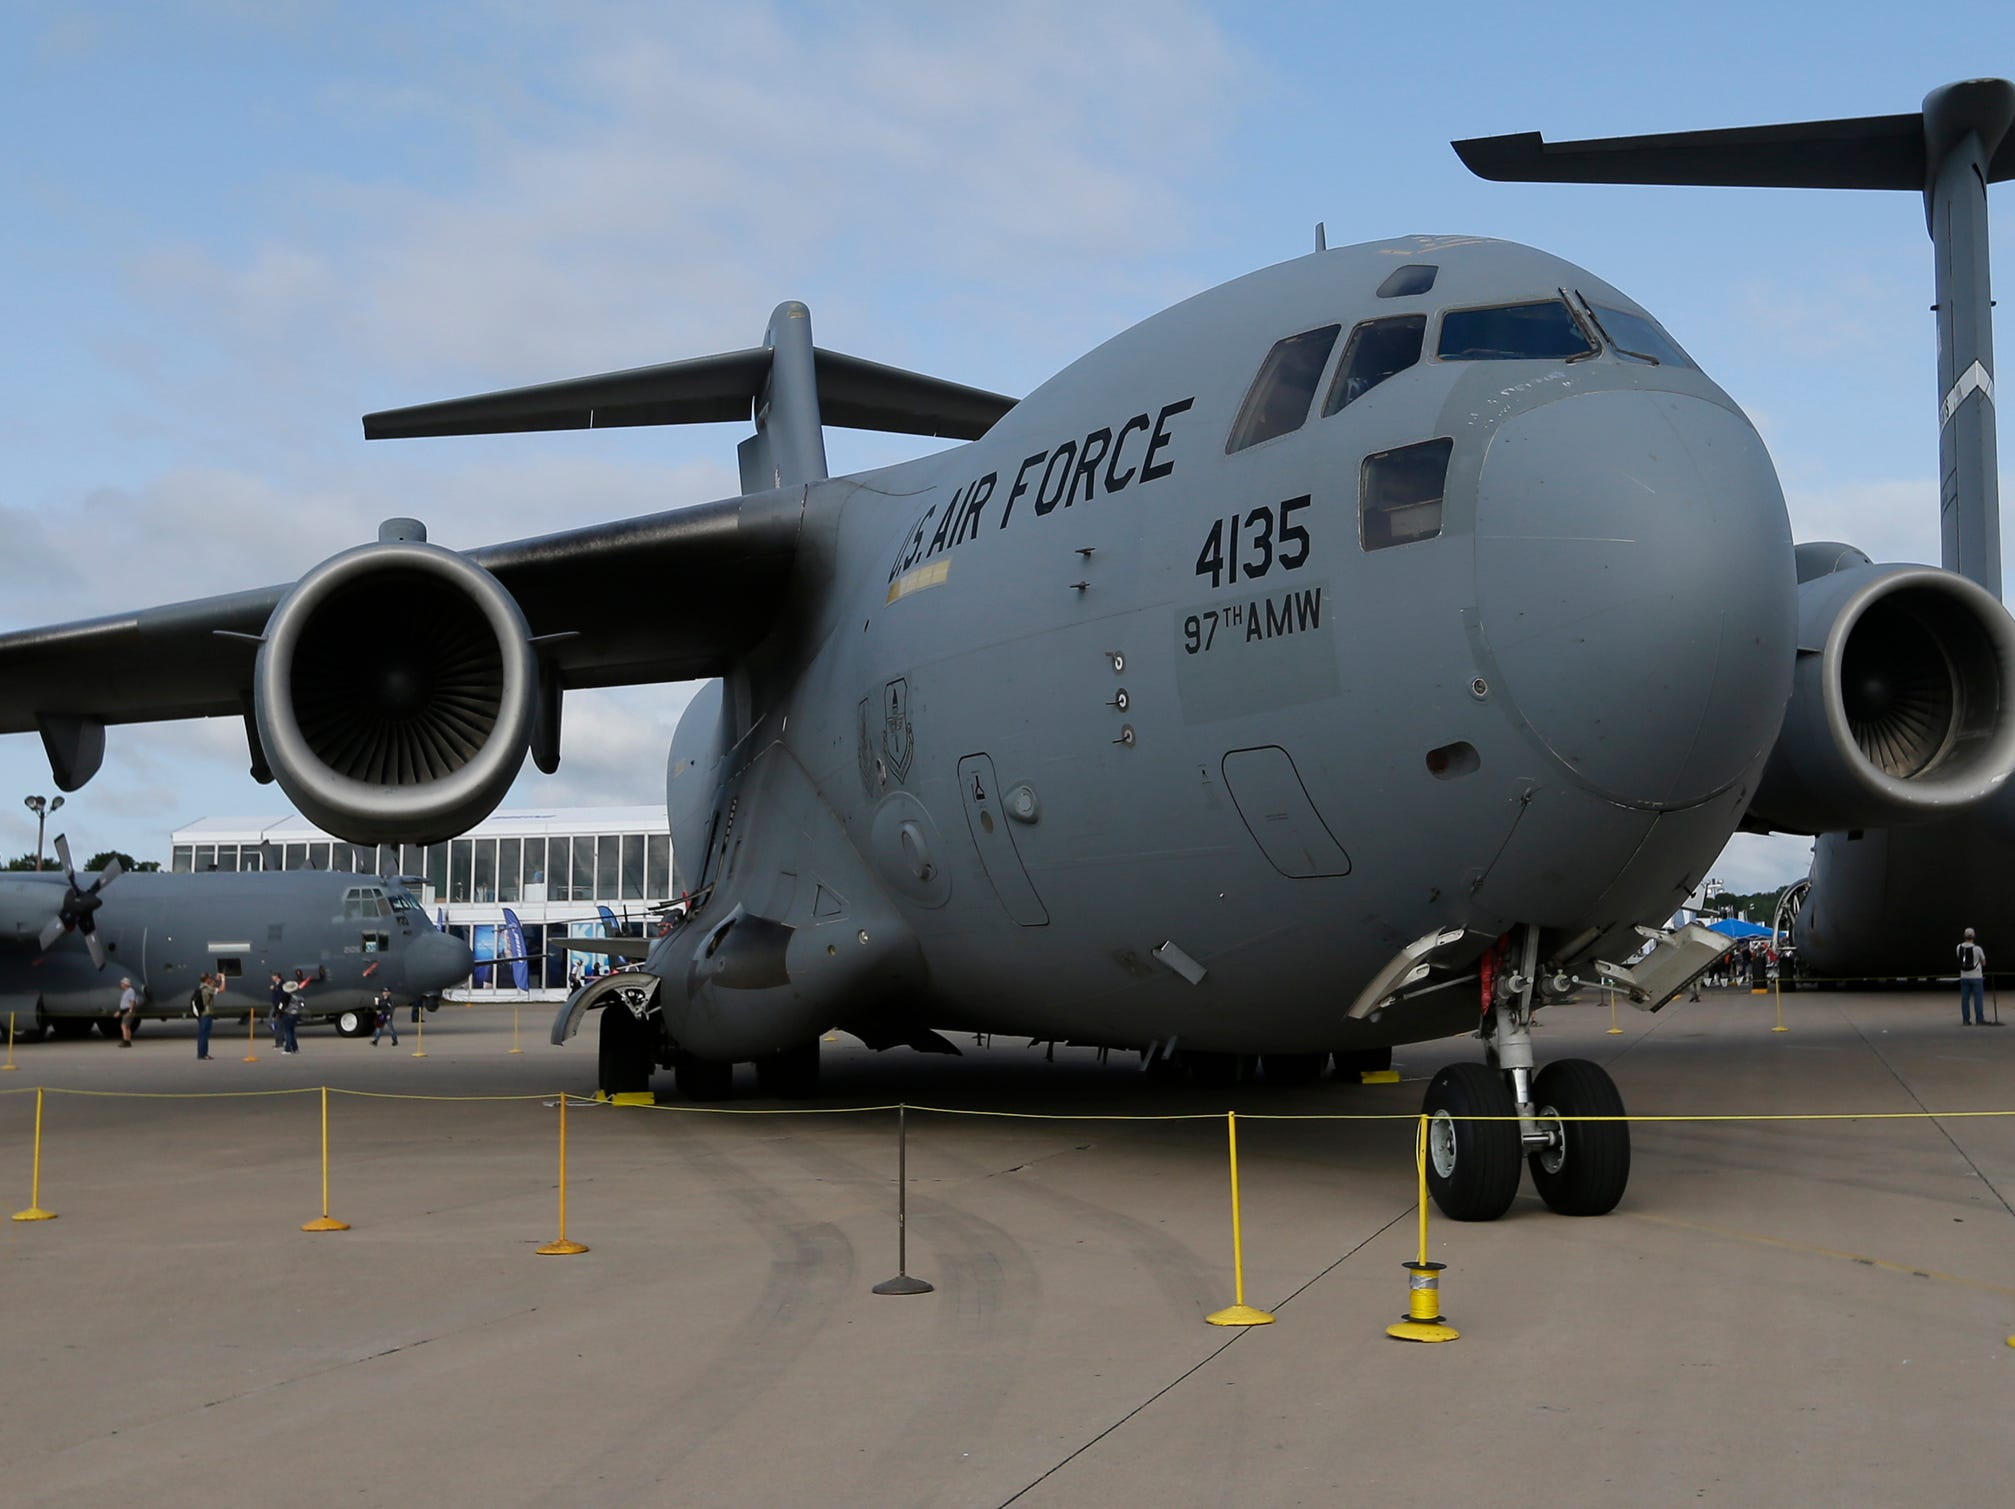 The C-17A was on static display at Boeing Plaza as part of the military hardware as part of the 70th anniversary of the Air Force Reserve Command, Friday, July 27, 2018, in Oshkosh, Wis.  The 66th annual Experimental Aircraft Association Fly-In Convention, AirVenture 2018 draws over 500,000 people and over 10,000 planes from more than 70 nations annually to the area.  The convention runs through July 29.Joe Sienkiewicz/USA Today NETWORK-Wisconsin